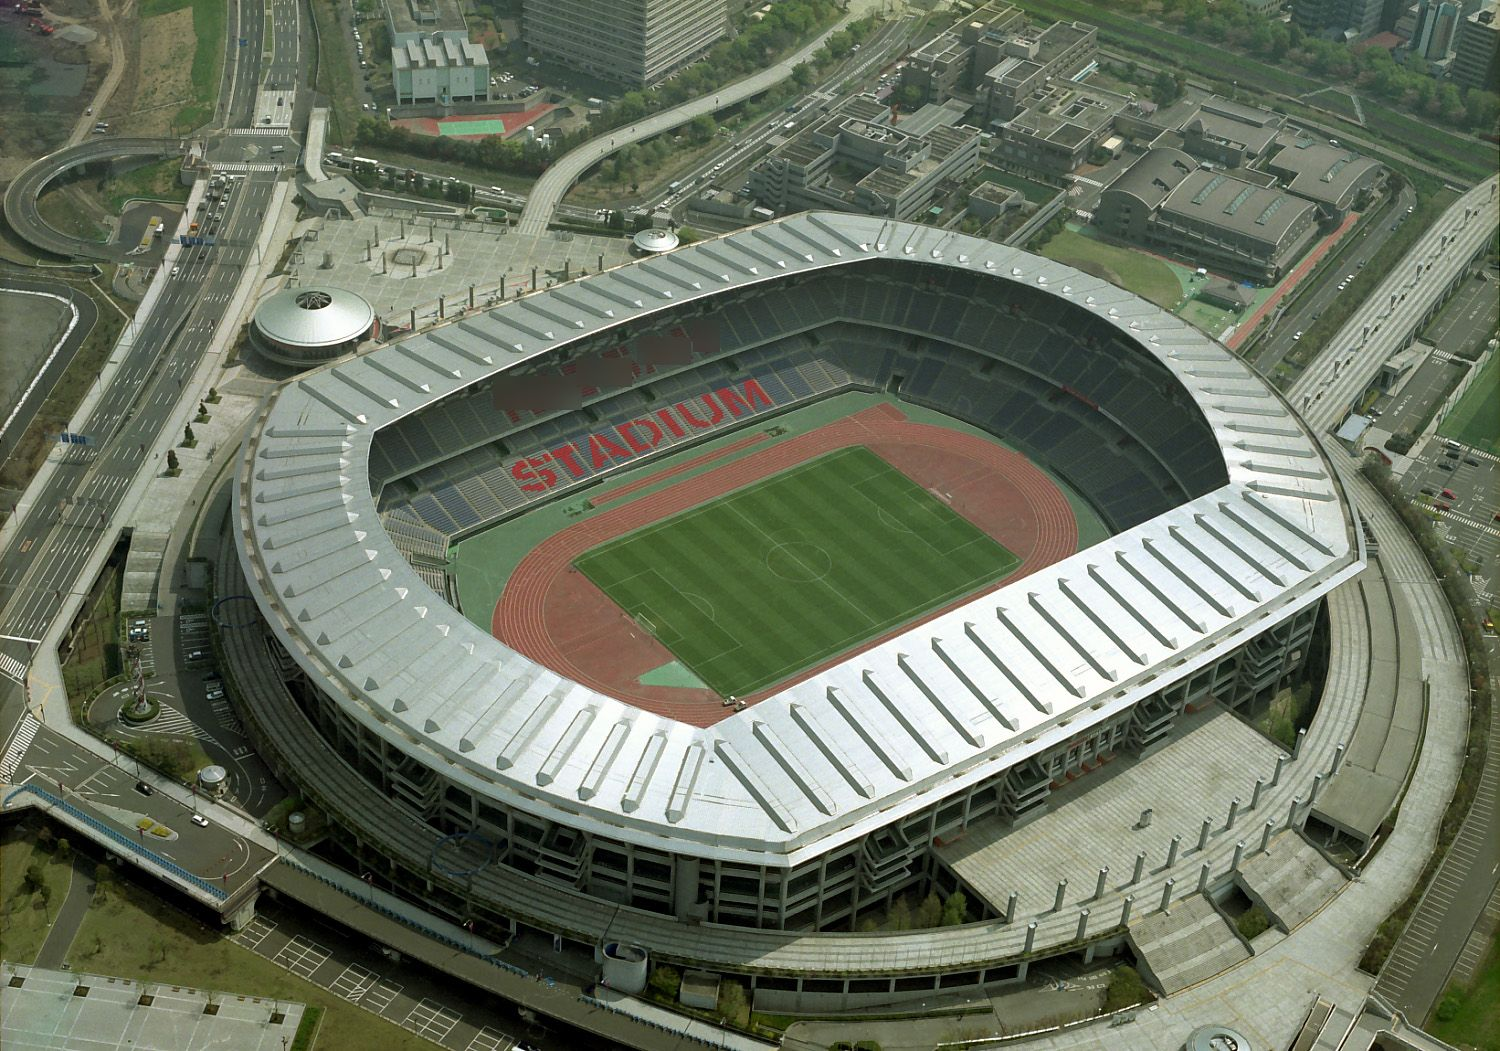 International Stadium Yokohama (Nissan Stadium) Capacity: 72,327 Address: 3300 Kozukue-cho, Kohoku-ku, Yokohama, Kanagawa Pref. Notes: home of Yokohama F. Marinos (J. League first division)